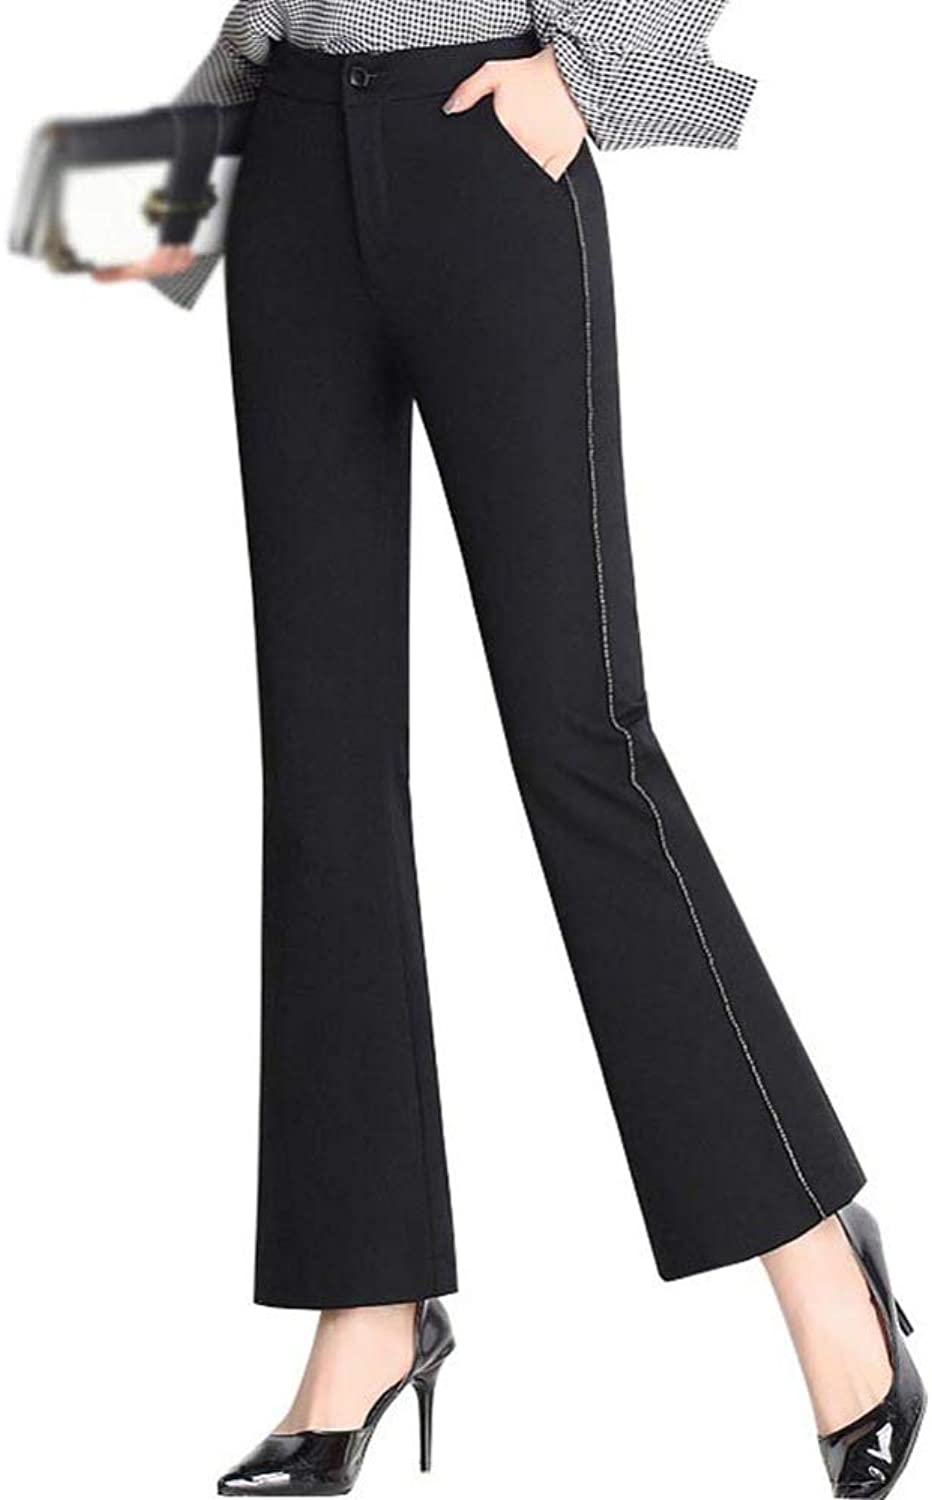 HOQTUM Wide Leg Pants Women's Cropped Trousers Spring and Summer high Waist Stretch Slim Thin Flared Pants Women's Casual Pants Black